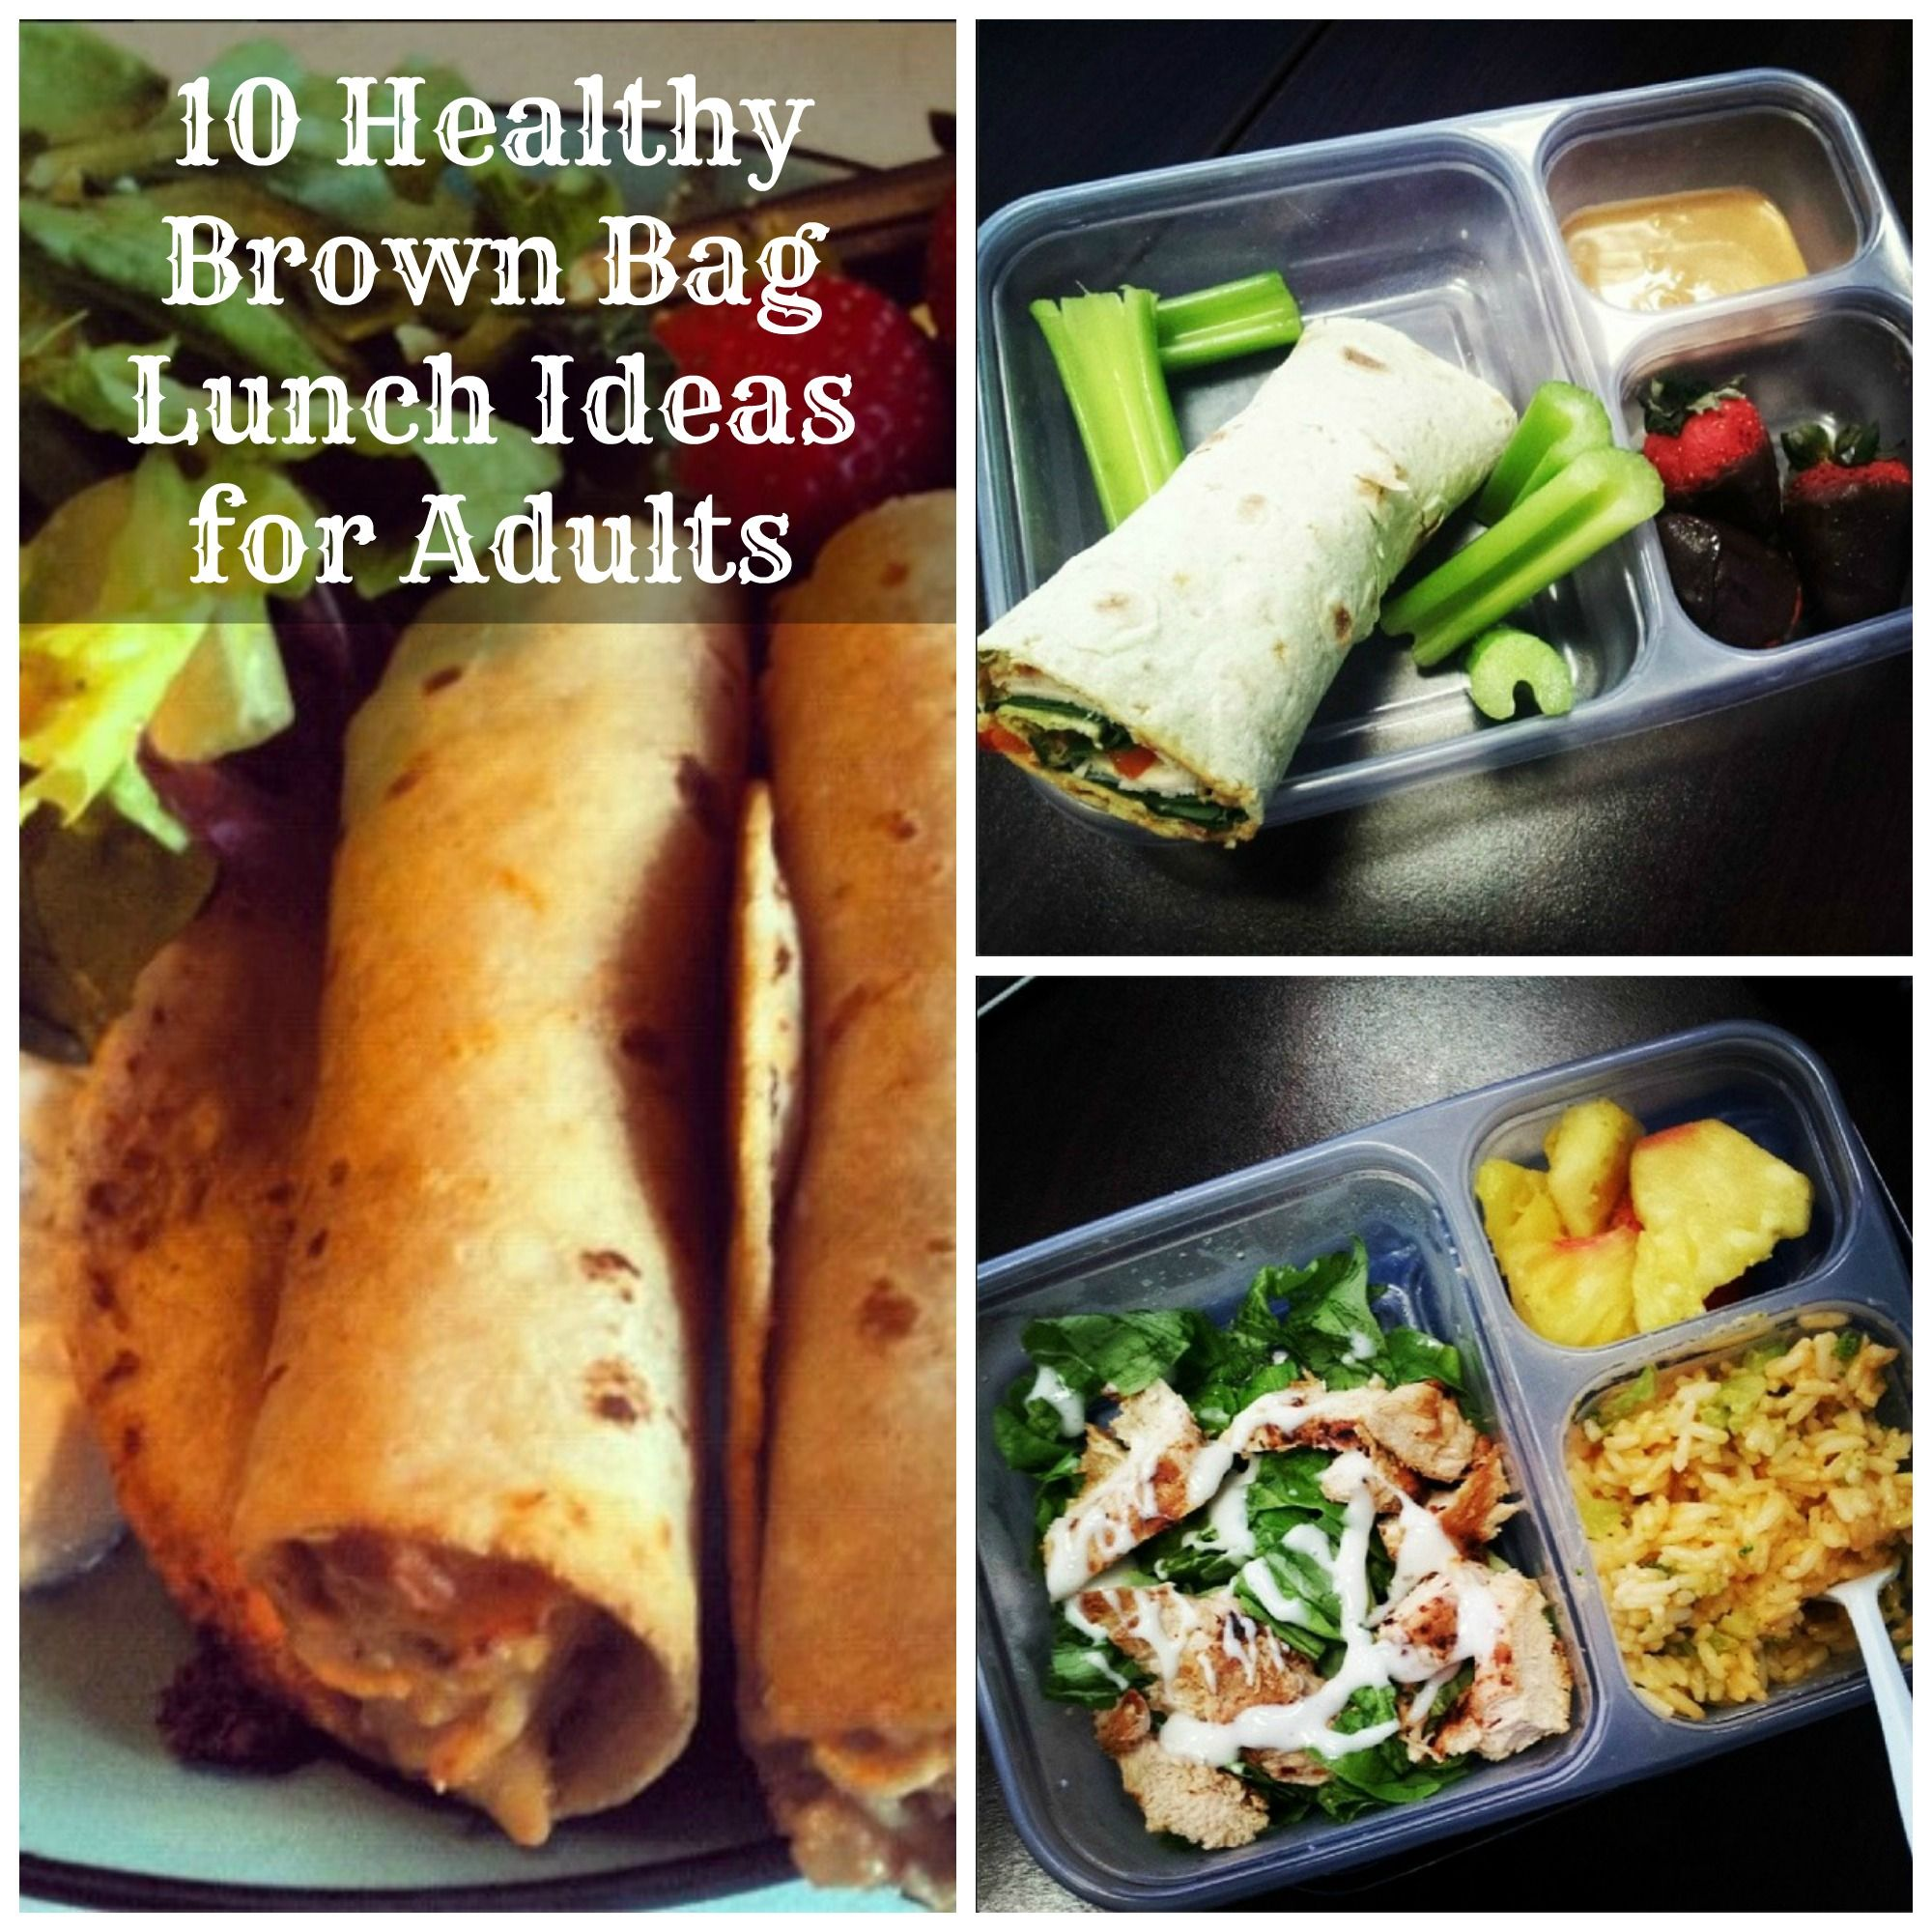 10 healthy brown bag lunch ideas for adults the group board on 10 healthy brown bag lunch ideas for adults eat healthy and save money check us out on fb for more healthy tips forumfinder Image collections